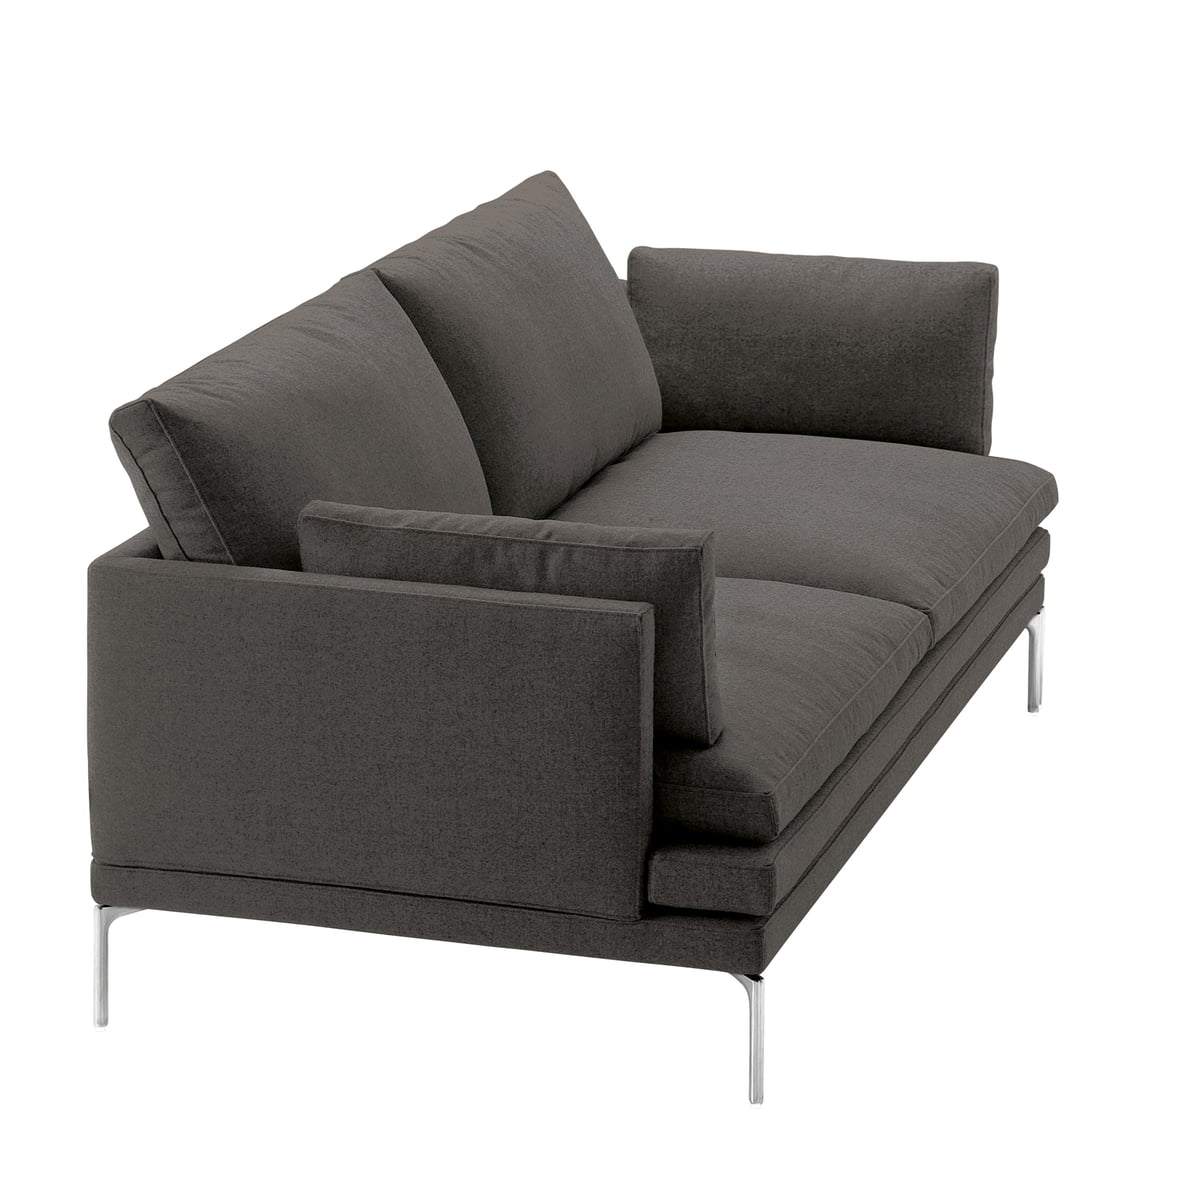 the william sofa by zanotta in the shop